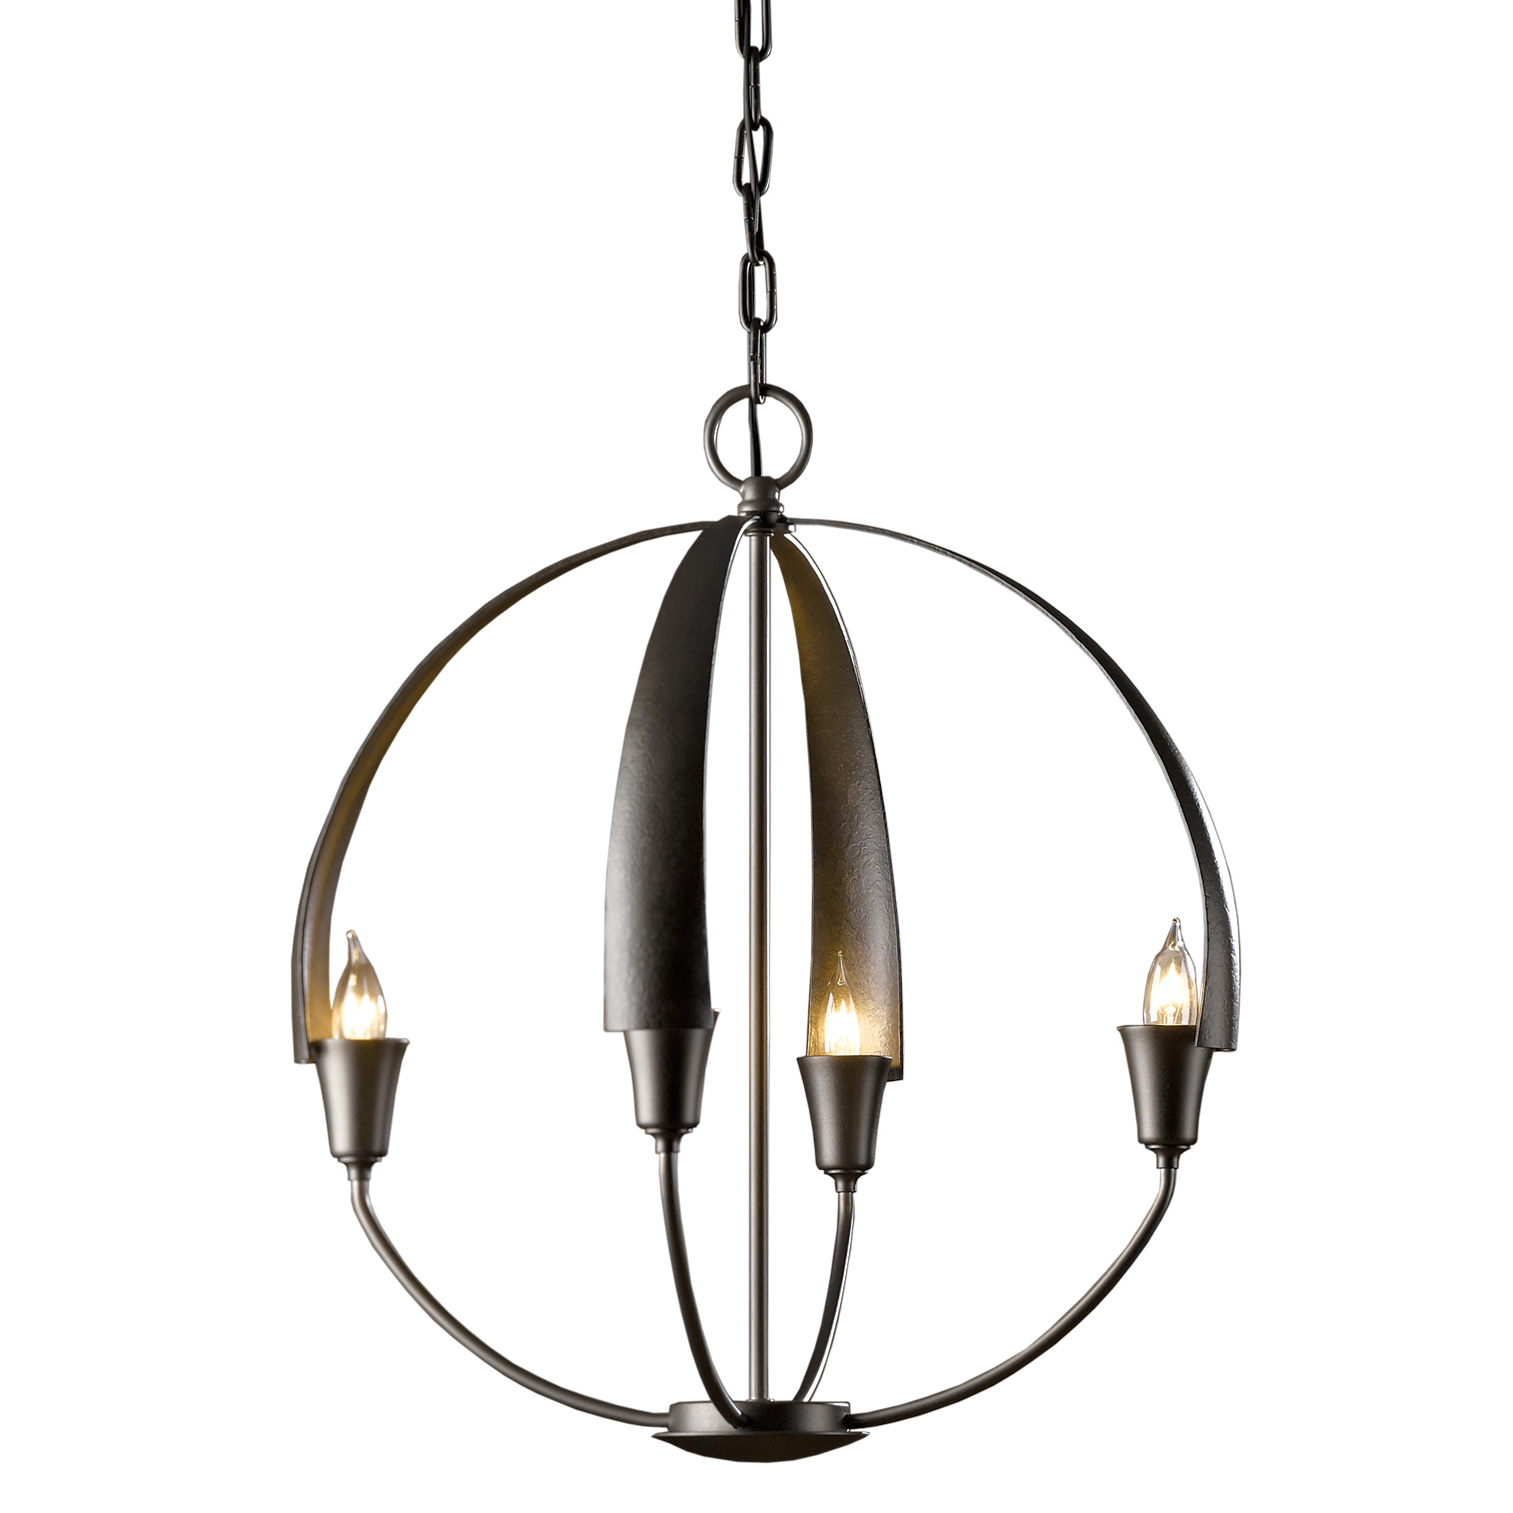 Cirque chandelier by hubbardton forge 104201 1003 aloadofball Choice Image